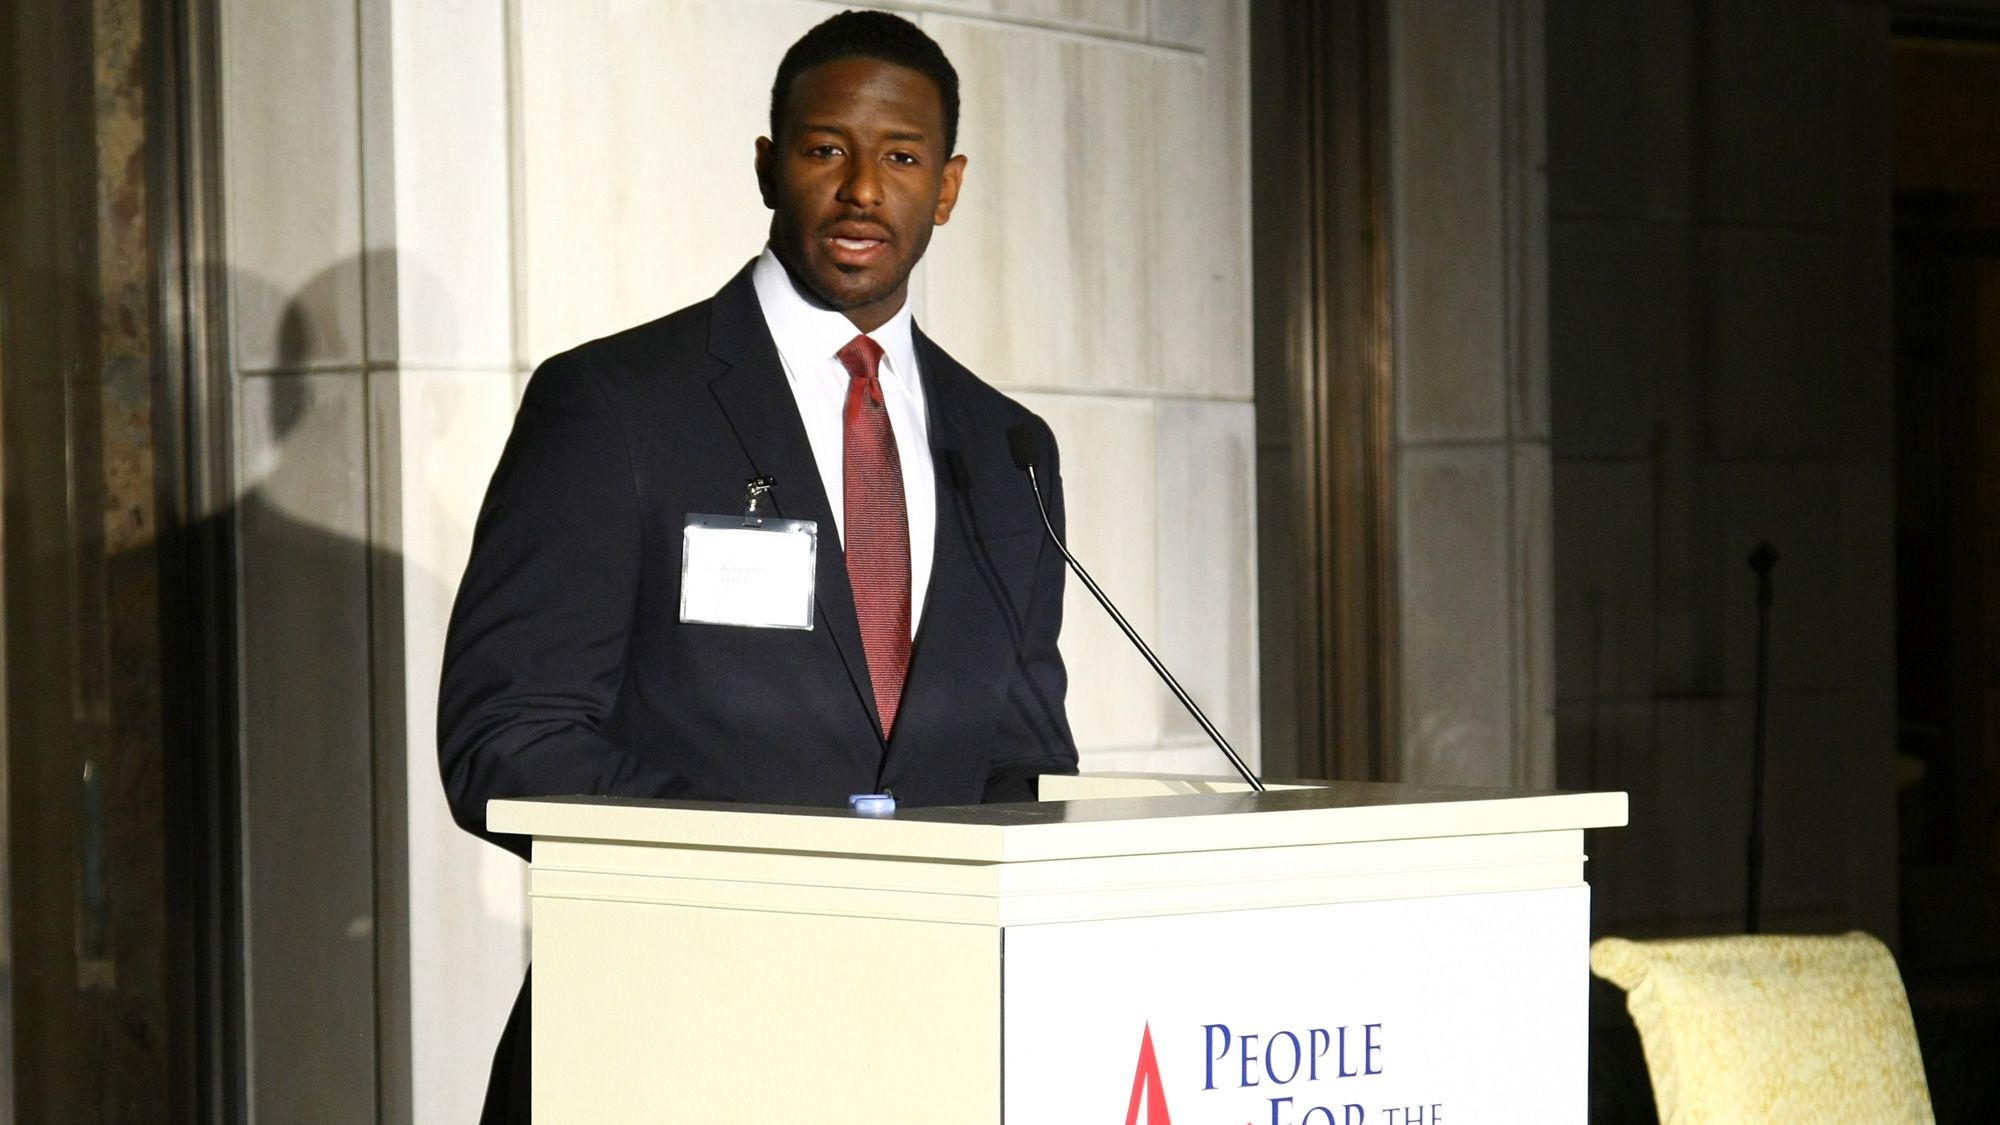 andrew gillum running to become governor of florida